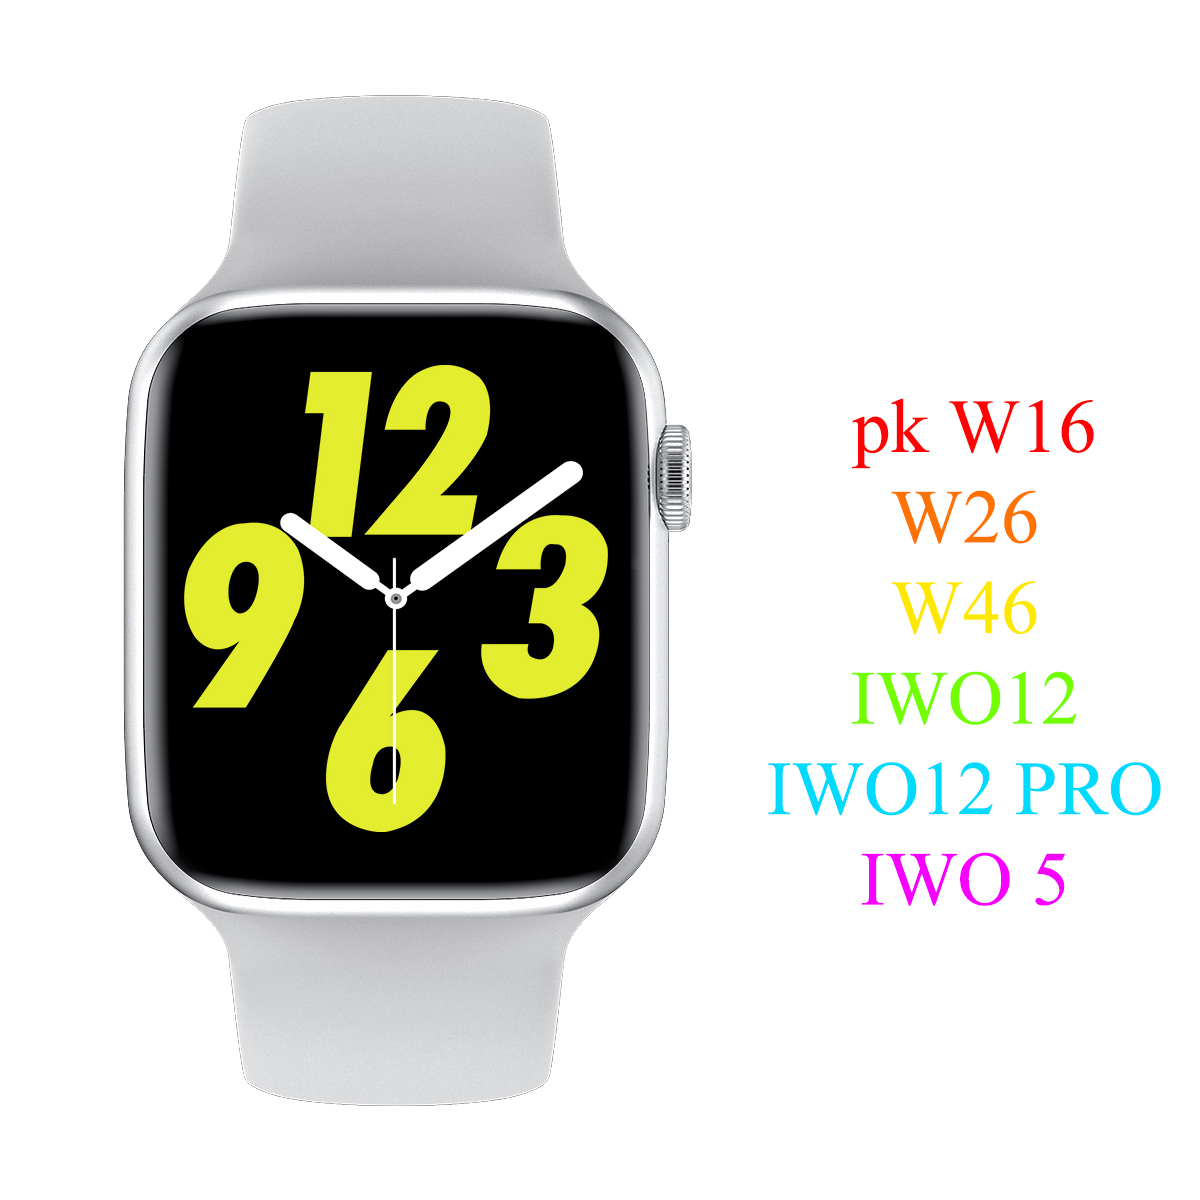 W16 PK W26 IP68 Smart Watch IWO 12 pro Heart Rate Monitor 320 385 Resolution Fashion IWO 12 SmartWatch 5 for Android IOS Phone